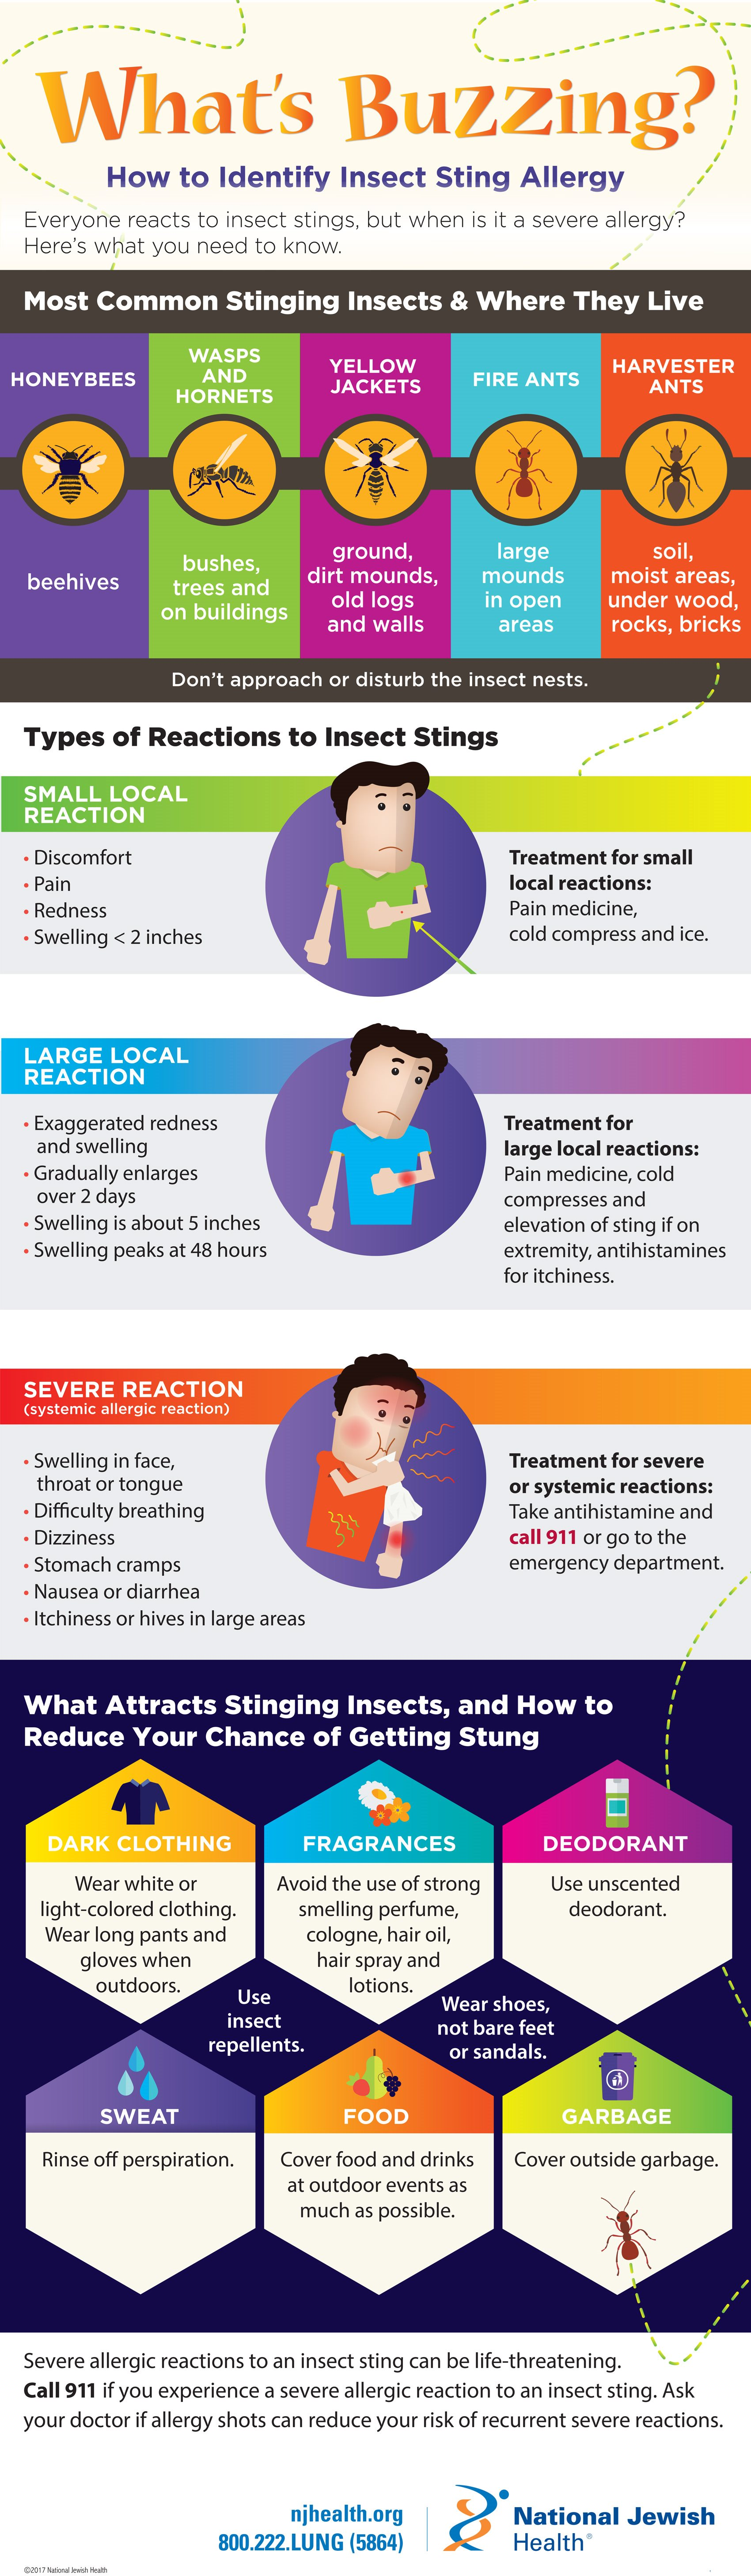 Insect Sting Allergy Infographic